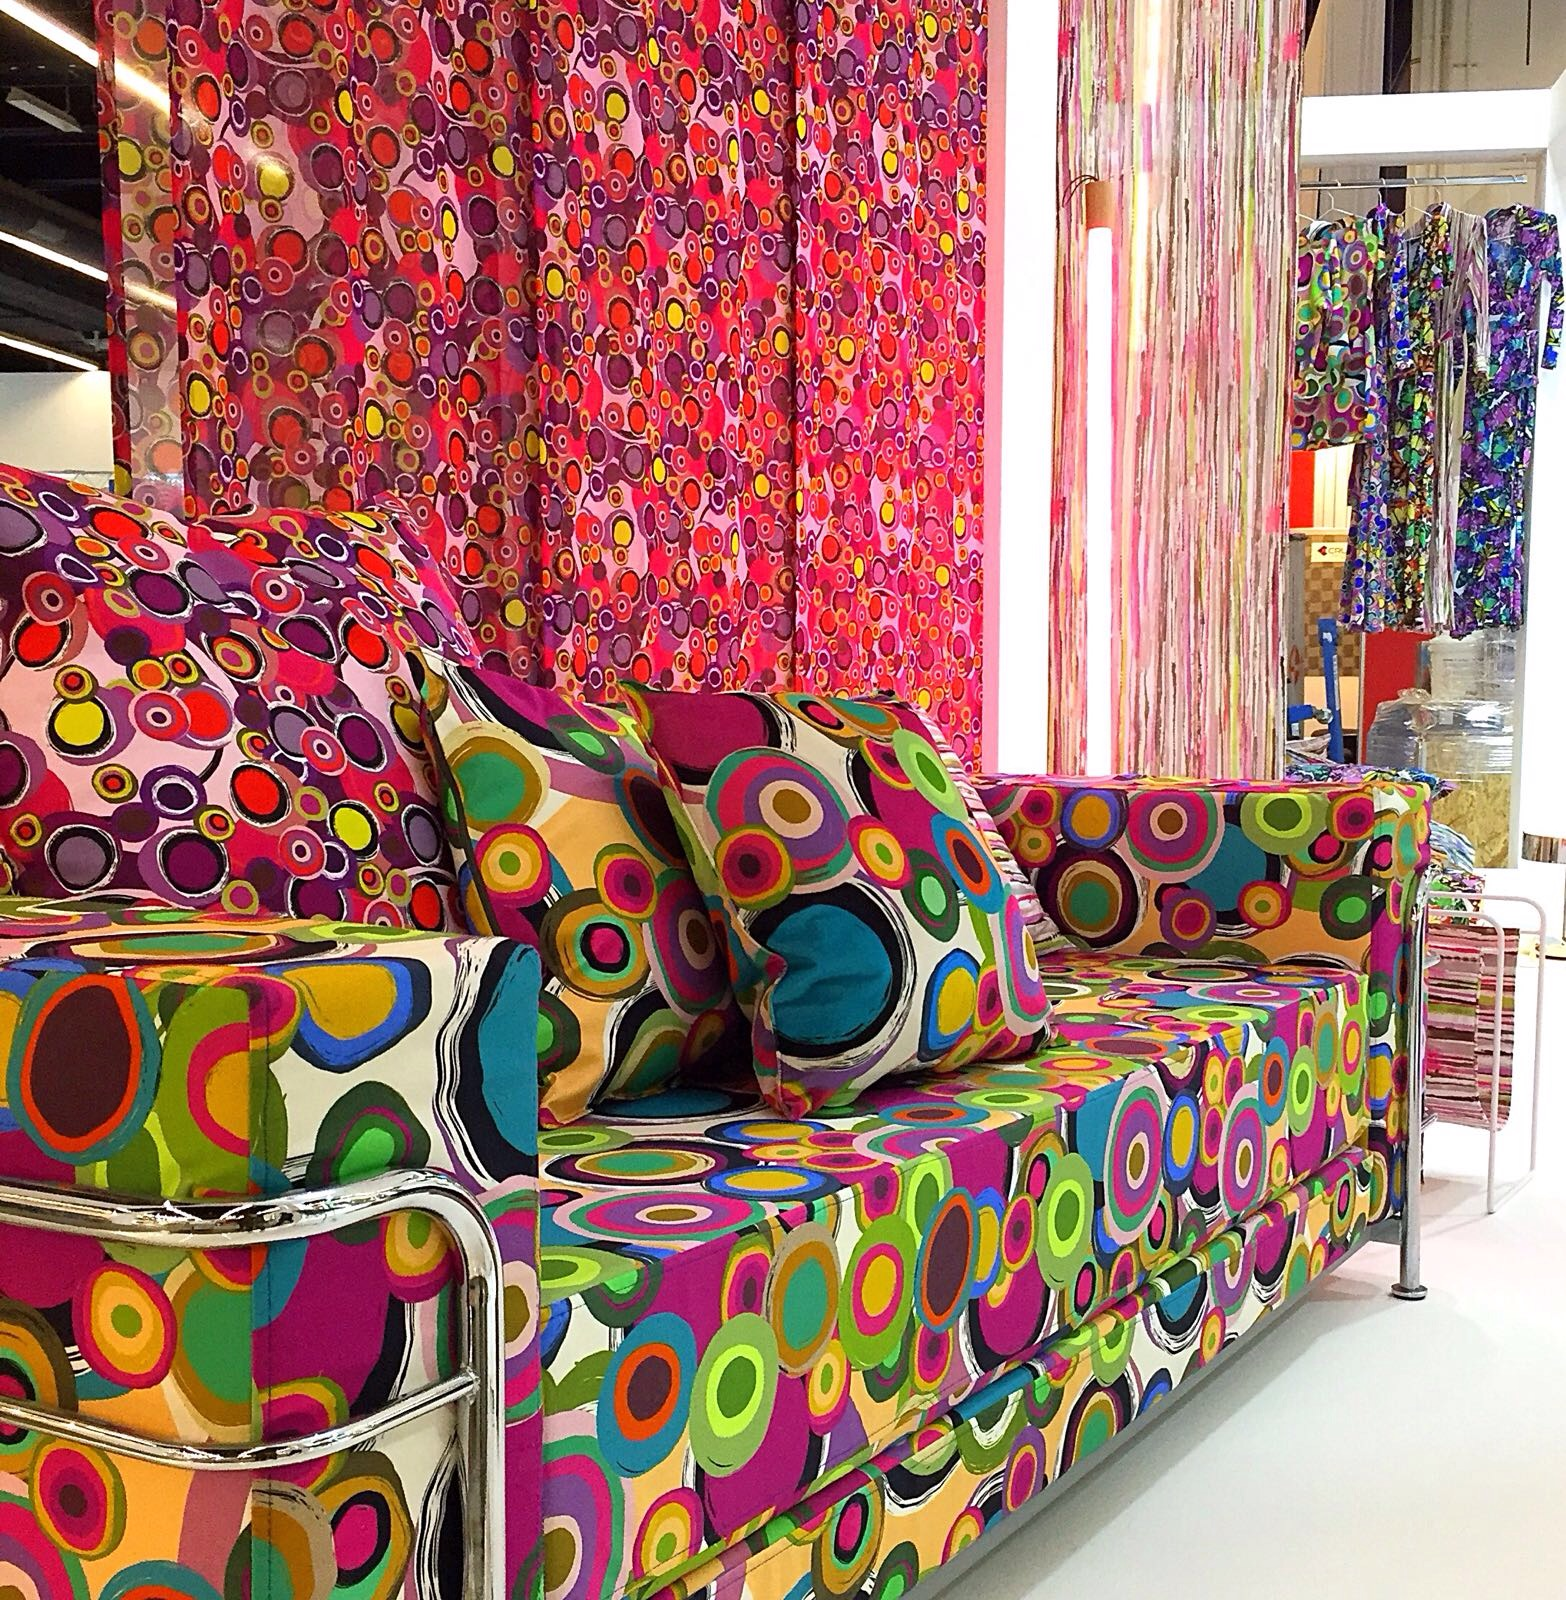 Examples of Digitally Printed Decor